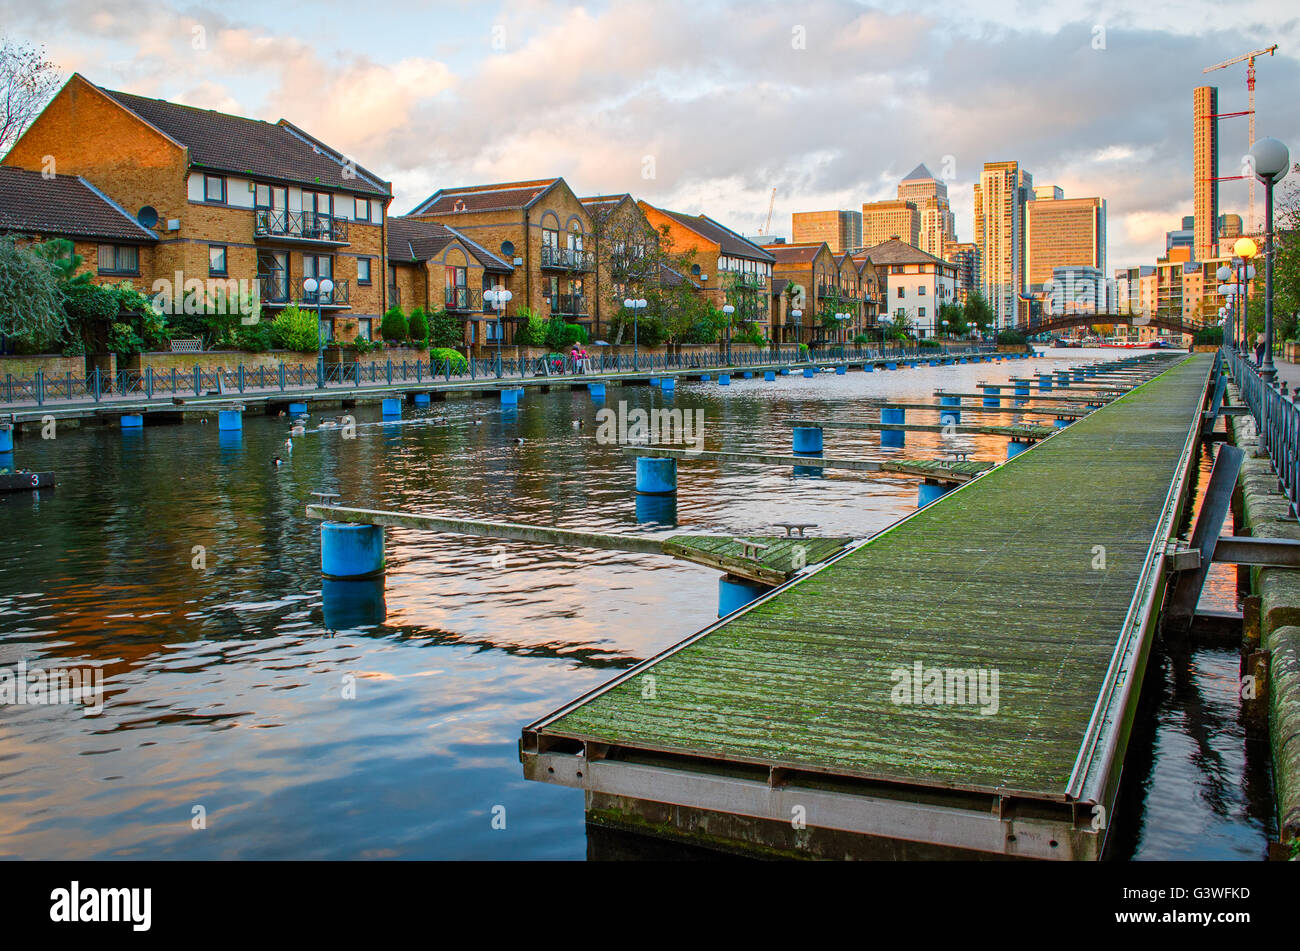 London, Isle of Dogs and Canary Wharf - Stock Image